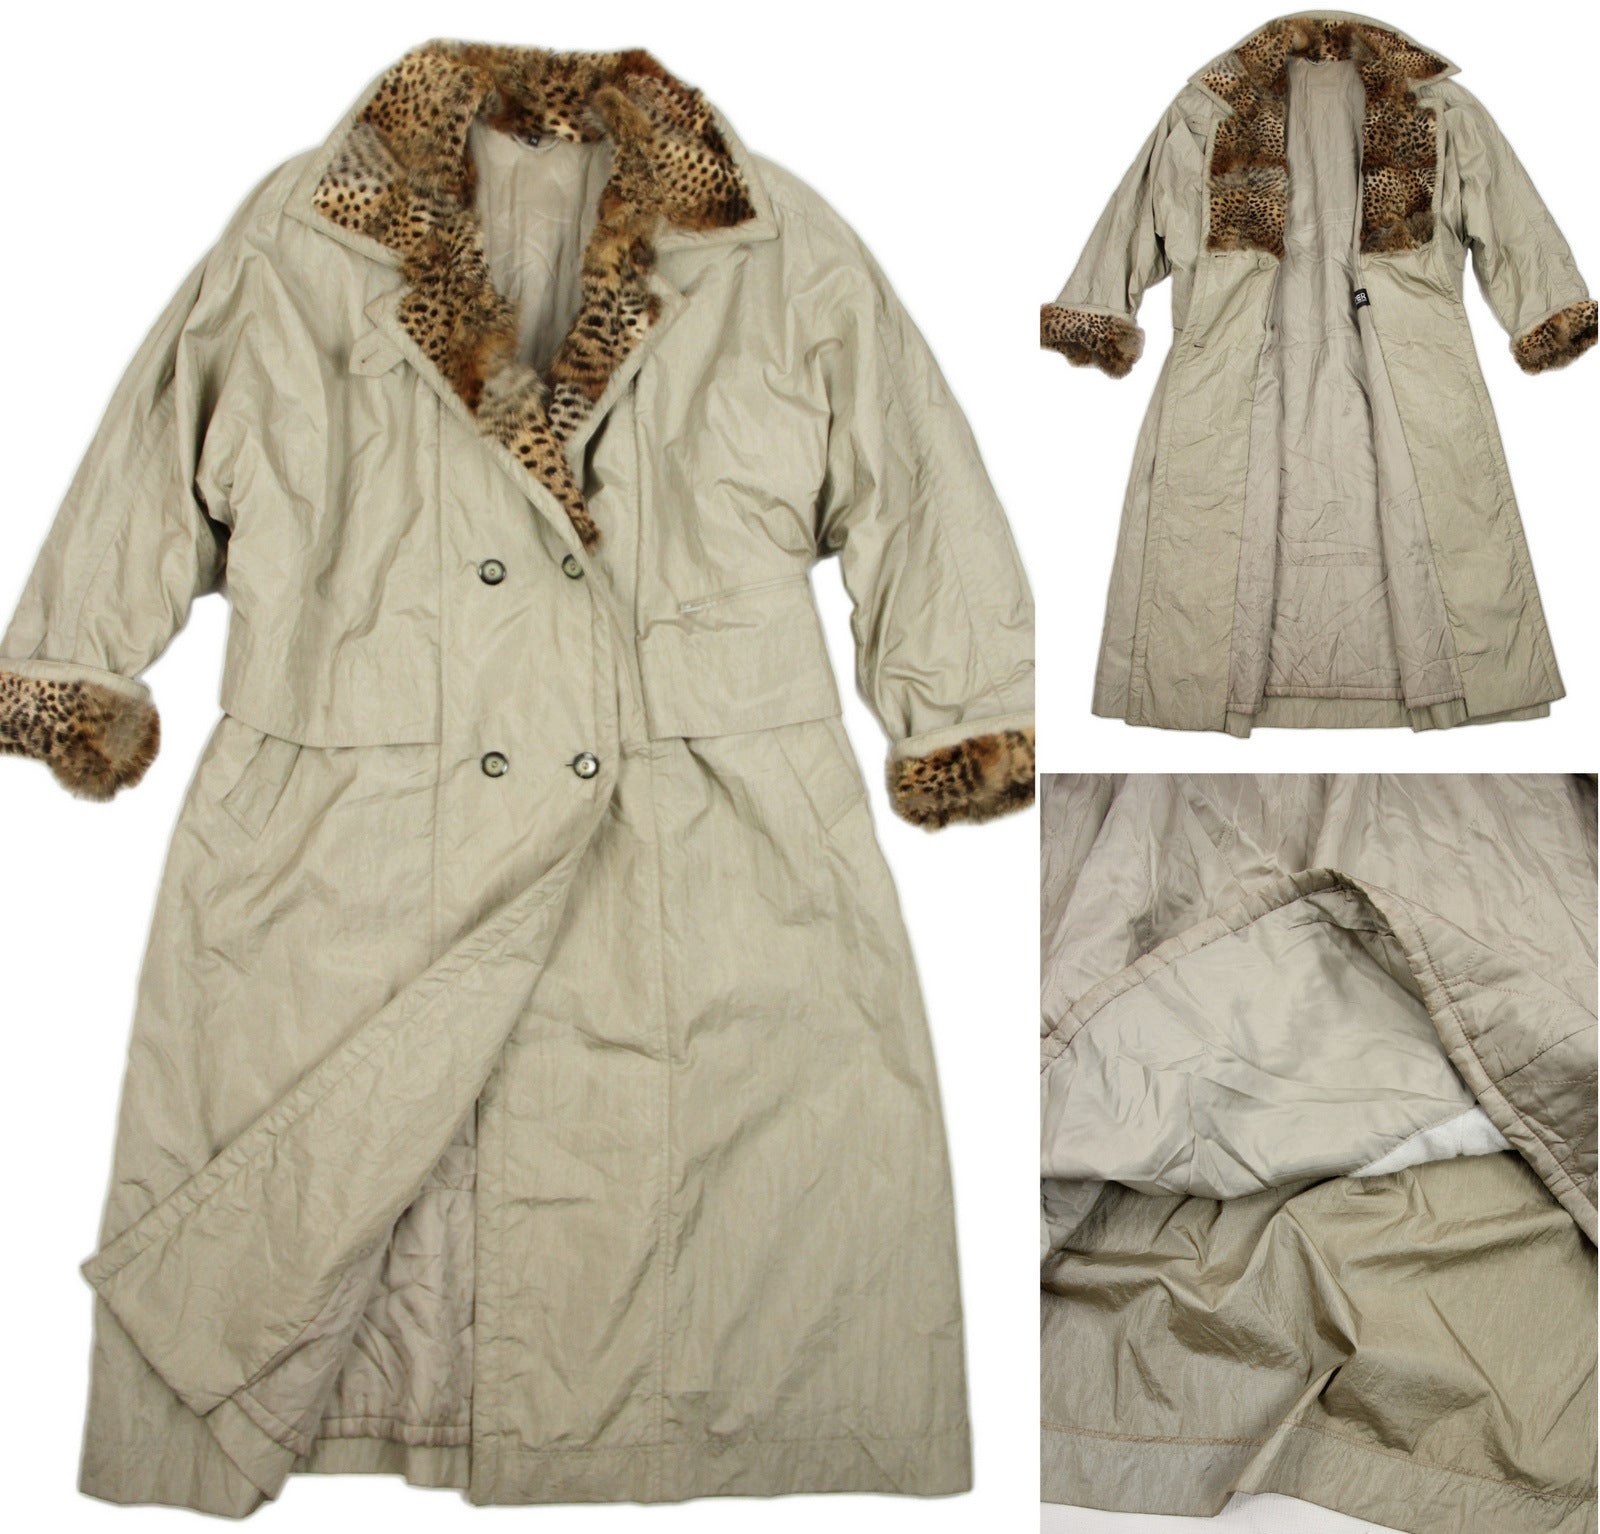 Vintage 80's Oversized Khaki Trench Coat With Animal Print Fur Details Size M